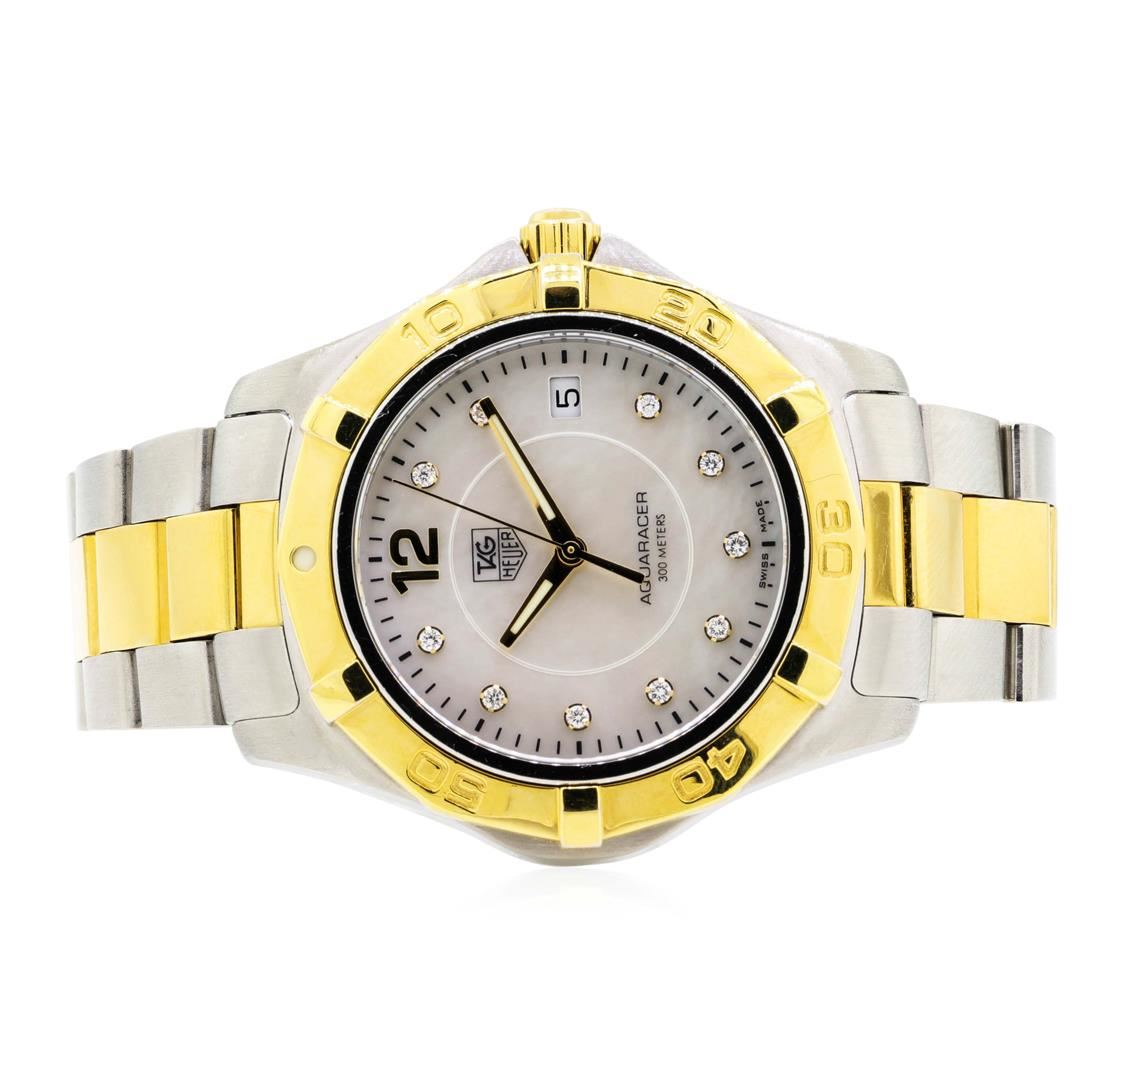 9f4ee8920f40e Image 1 : Stainless Steel and Gold Plated Men's Tag Heuer Aquaracer  Wristwatch ...